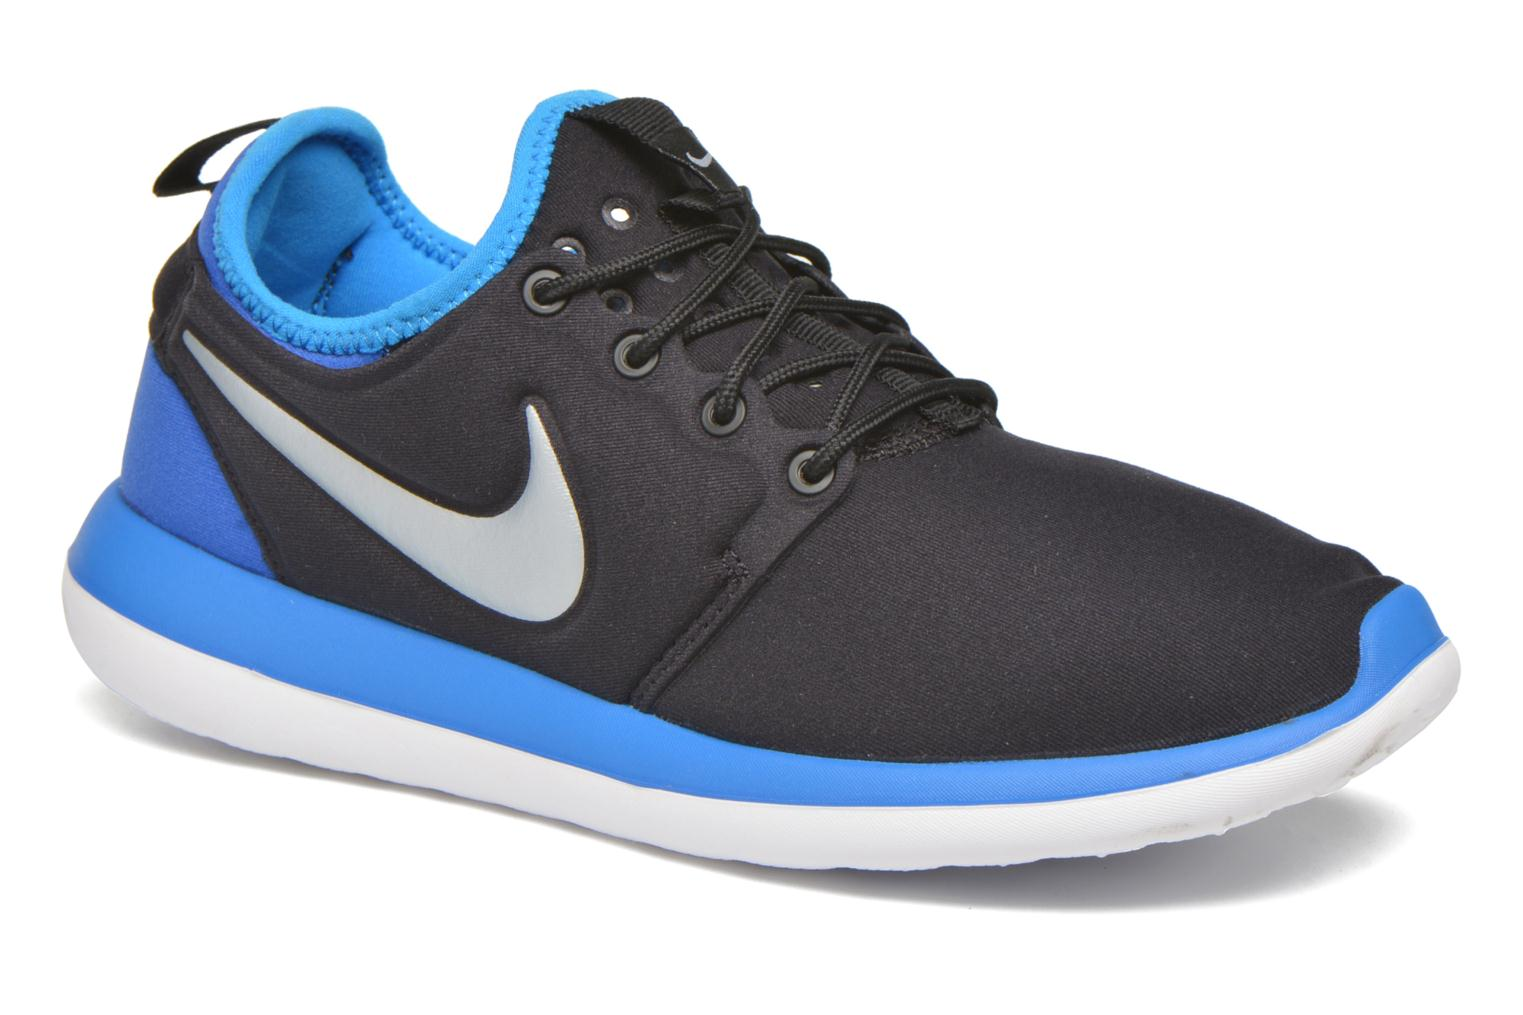 low priced 7db2c 3c0e4 Nike Kids Roshe Two (GS) Running Shoe